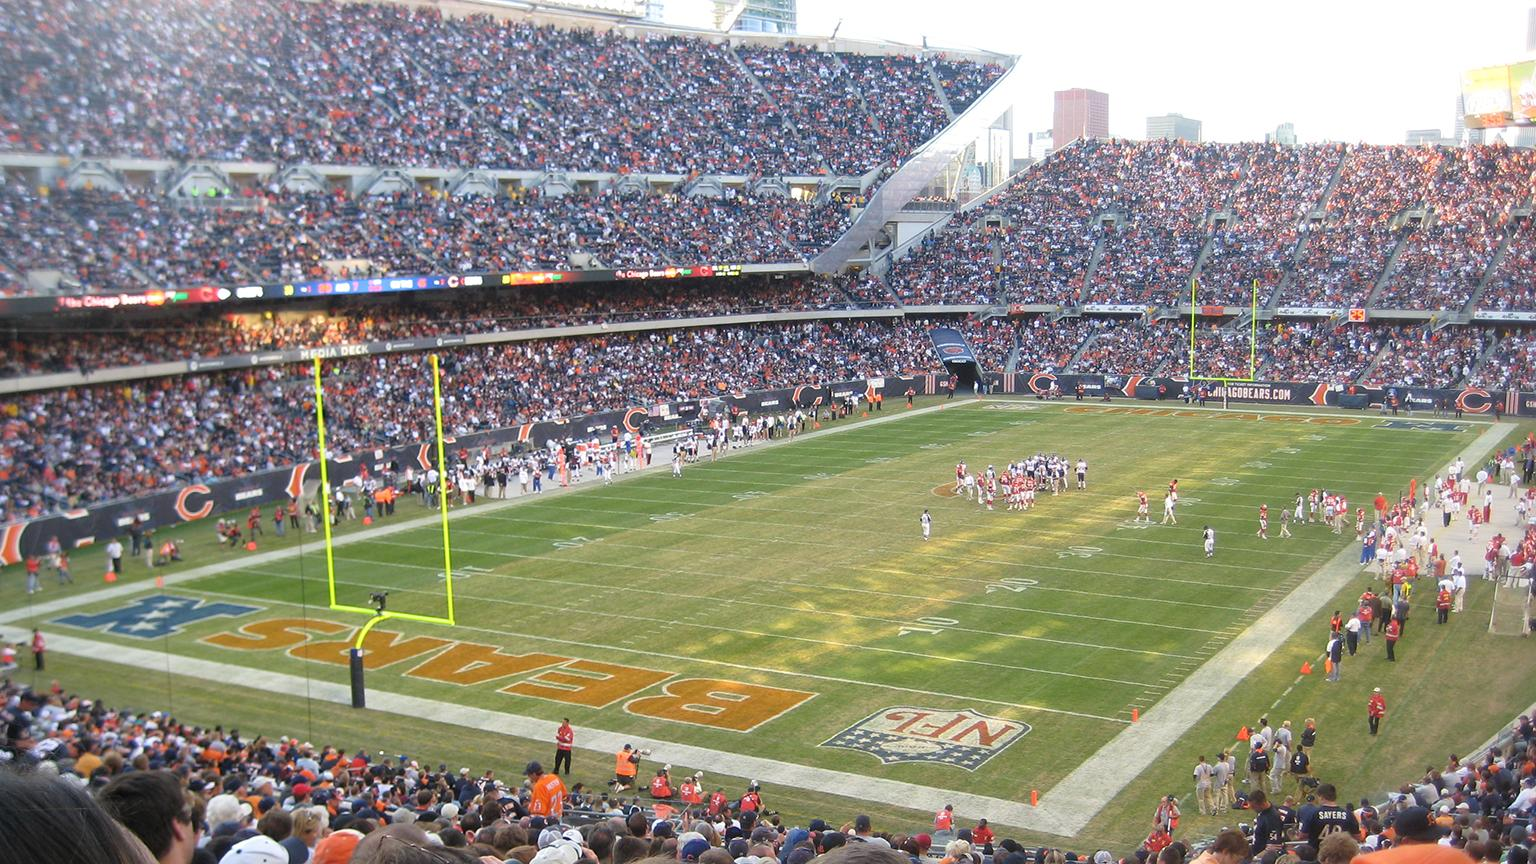 Soldier Field (Tony / Flickr)